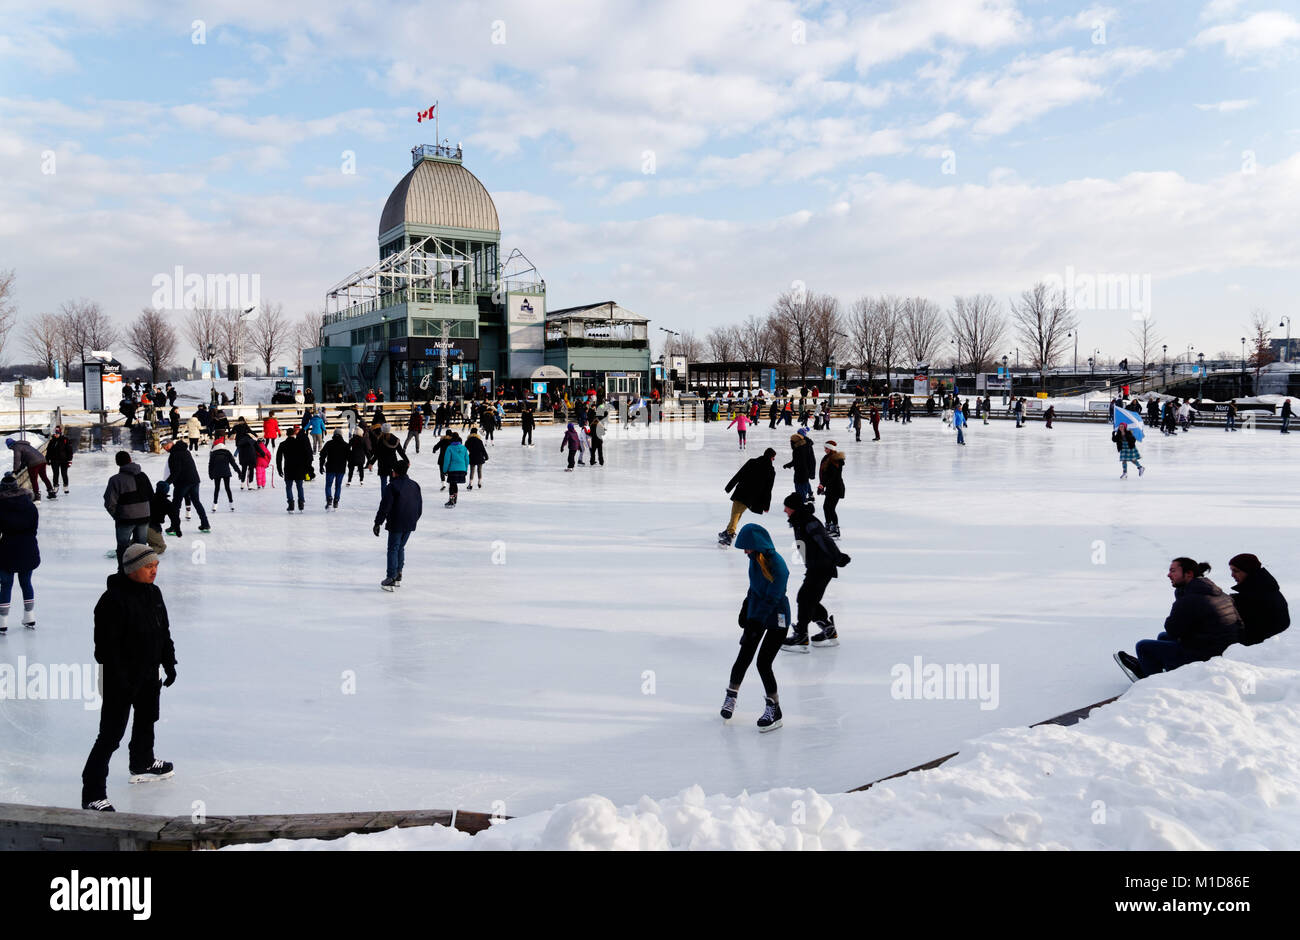 Skaters on the ice skating rink in the Old Port (Vieux Port) area of Montreal, Quebec, Canada - Stock Image